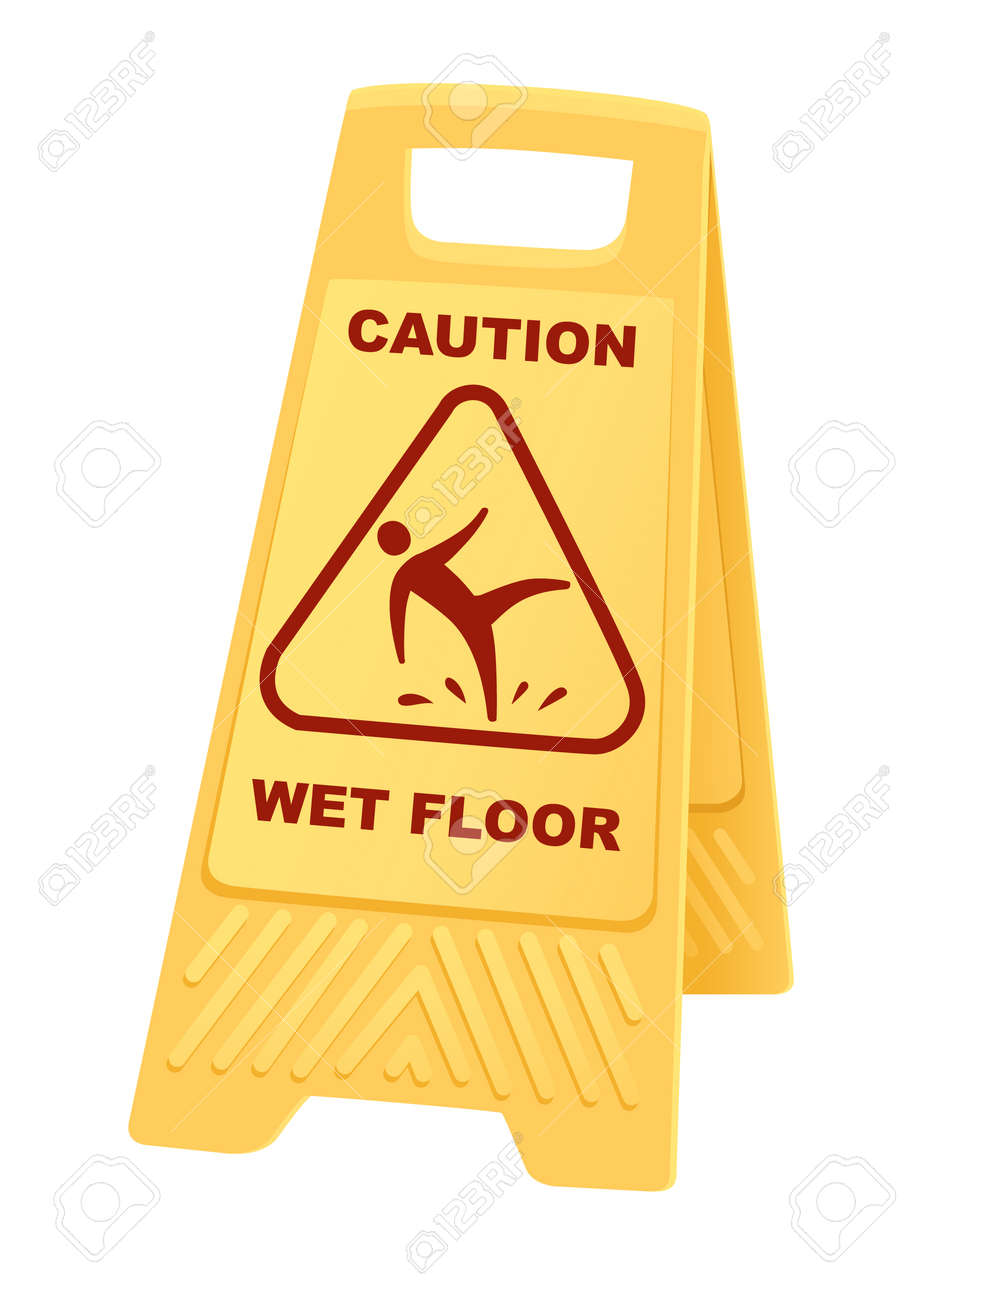 Yellow warning sign caution wet floor sign with falling man icon flat vector illustration isolated on white background - 166097632